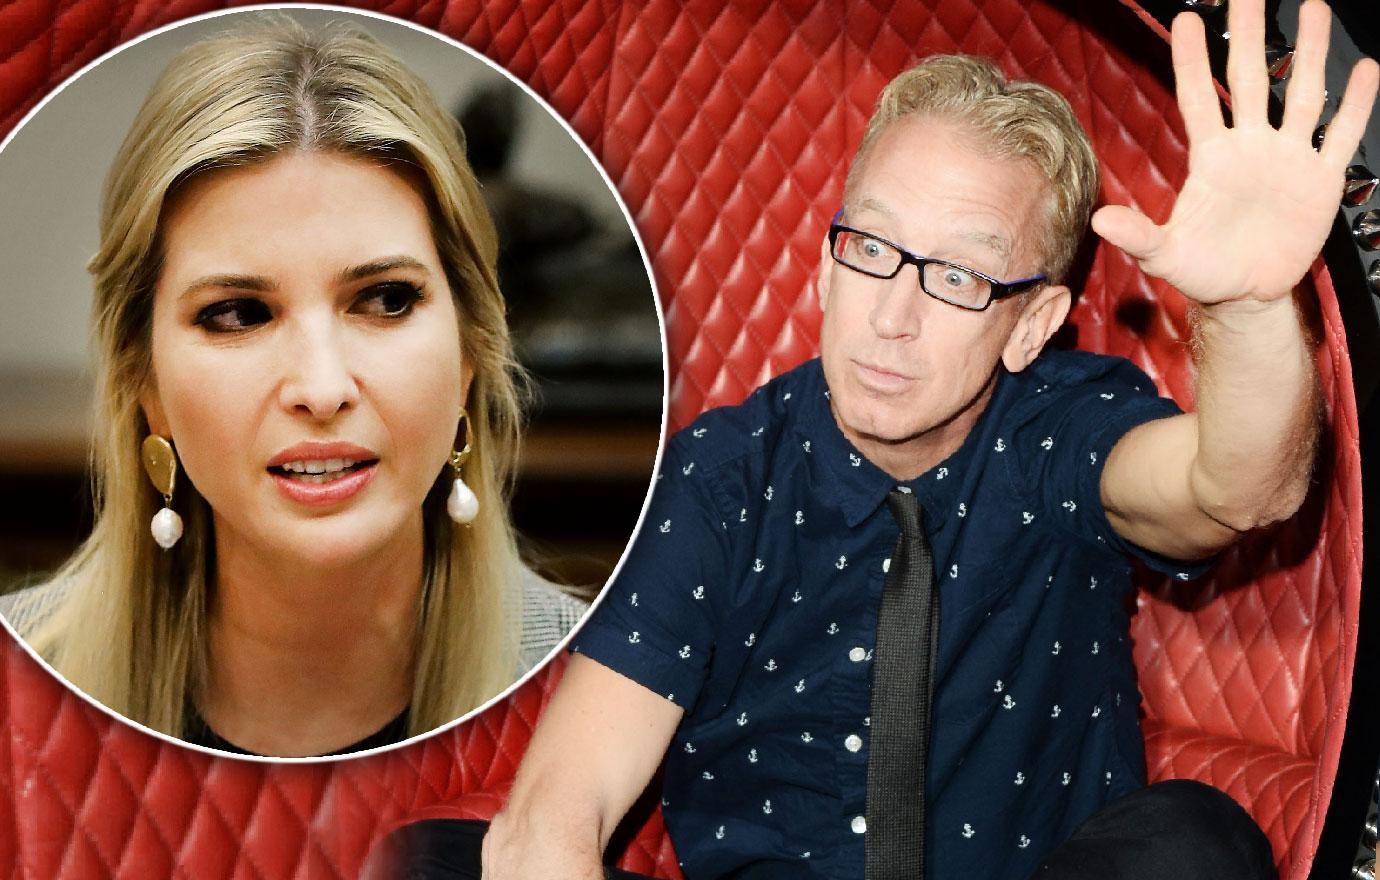 Andy Dick Once Groped Ivanka Trump On TV See Video